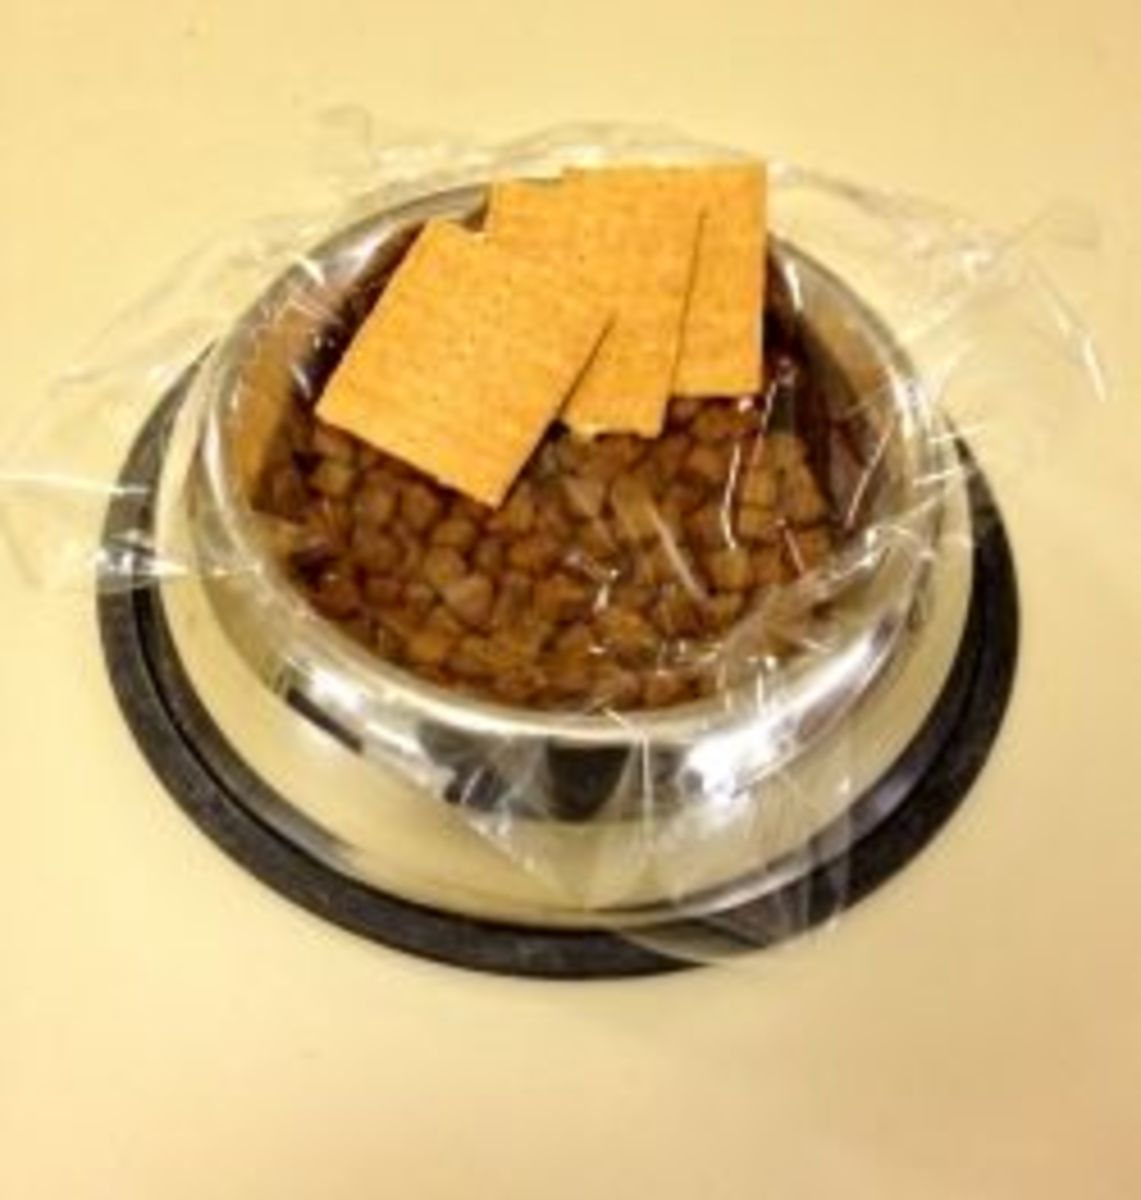 Eat crackers out of your dog's dish!